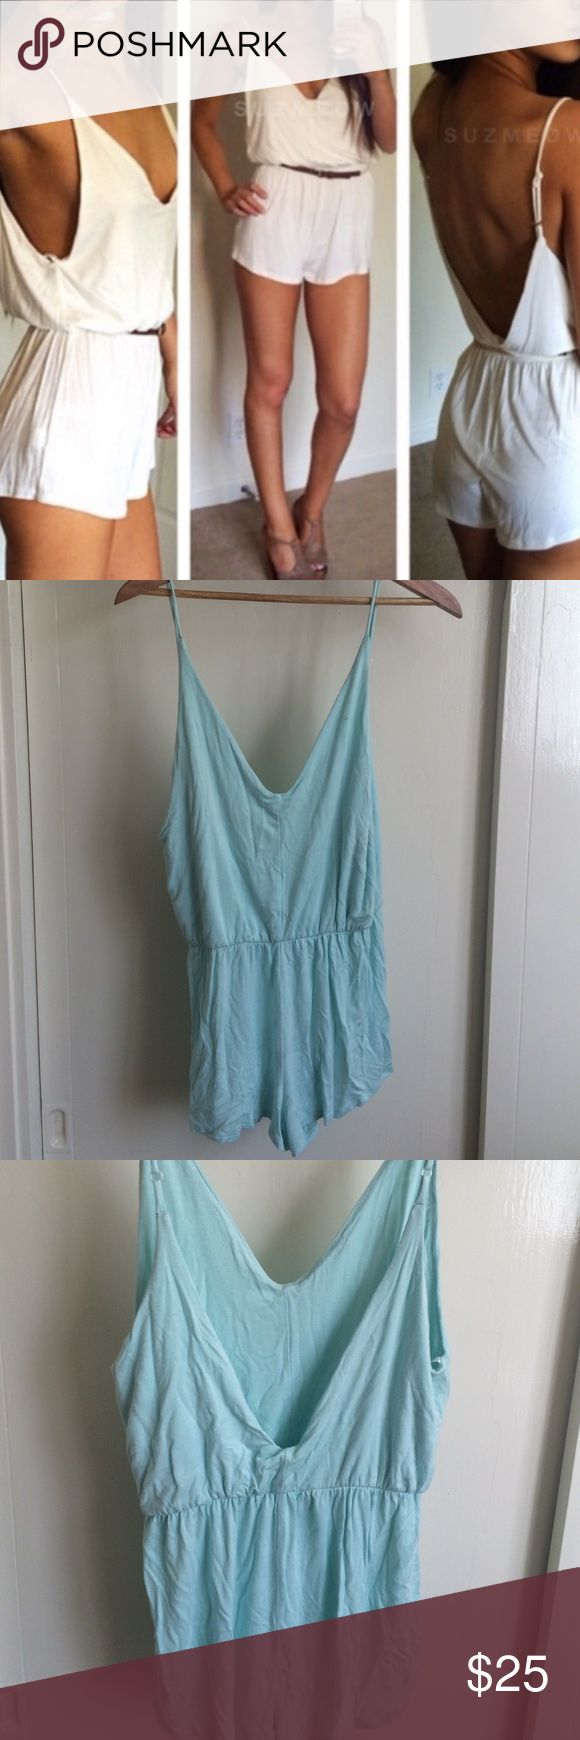 Aqua Cotton Romper Playsuit/jumpsuit. Light blue colored. It's the exact same as the white one in the features photo just a different color. Size M Missguided Pants Jumpsuits & Rompers